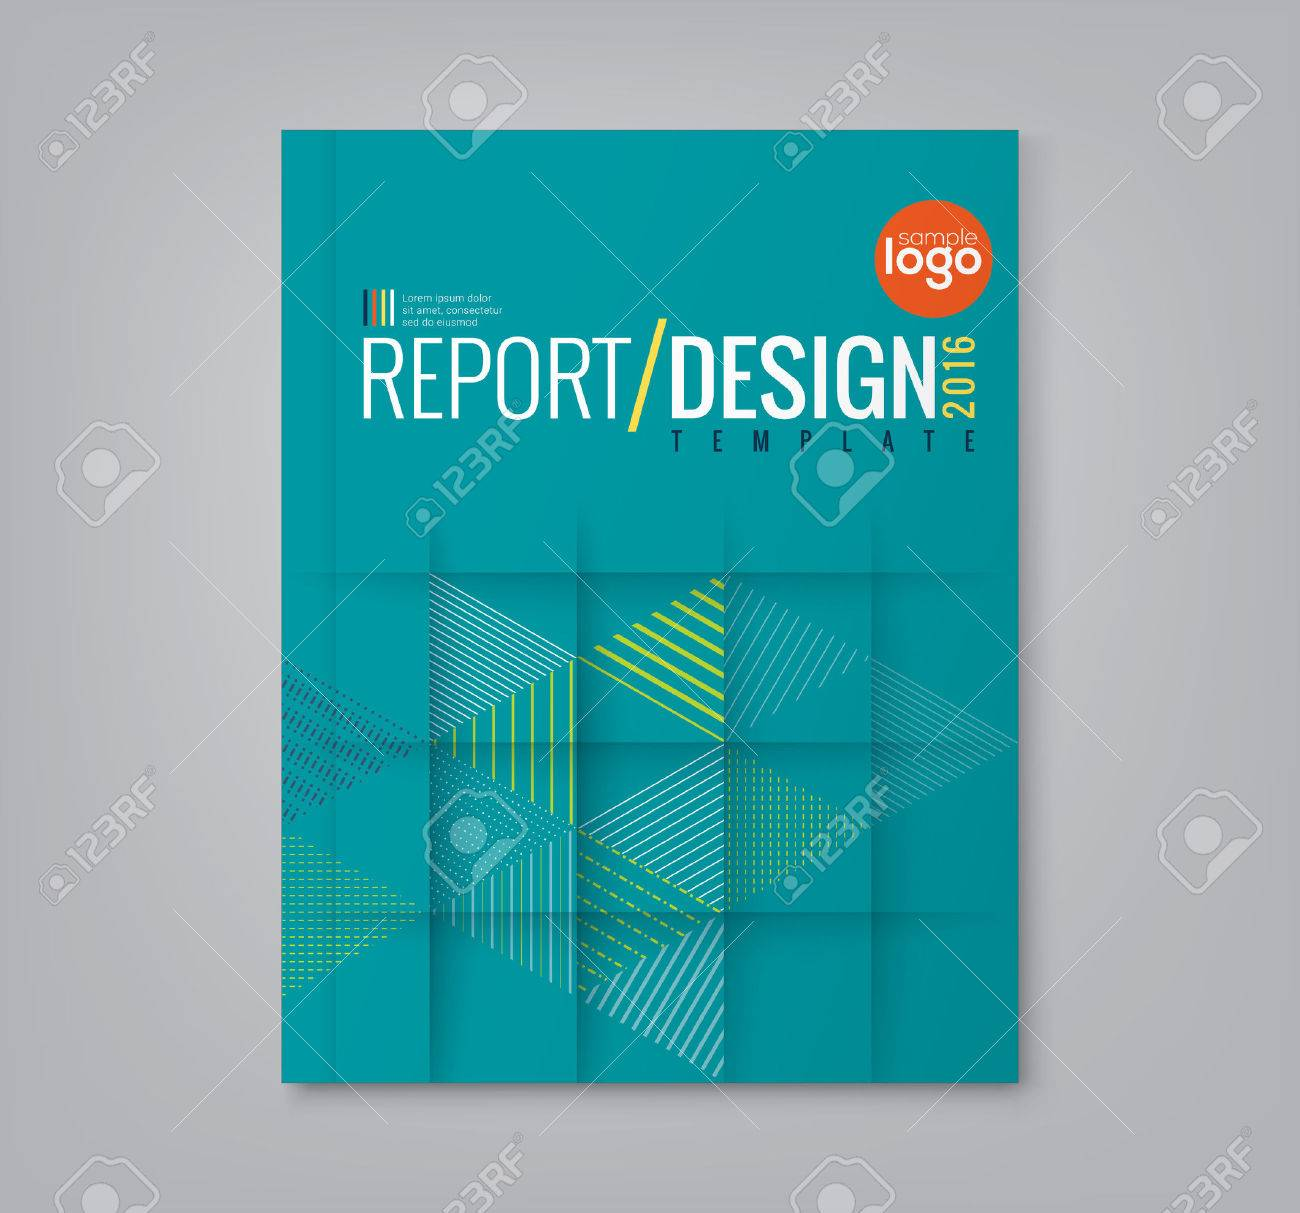 abstract minimal geometric triangle shapes design background for business annual report book cover brochure poster stock